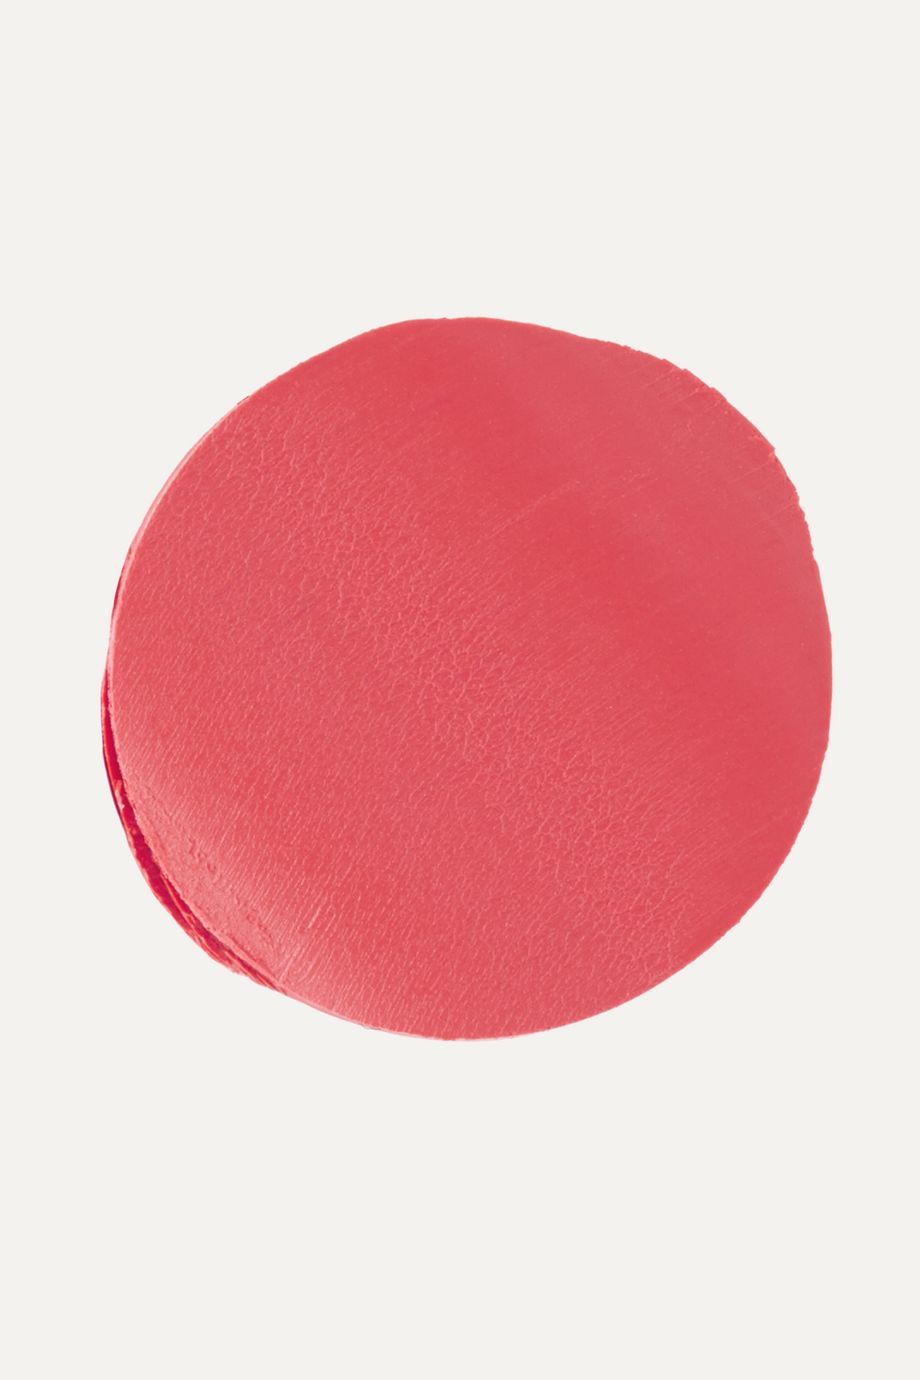 Burberry Beauty Burberry Kisses Sheer - Coral Pink No.265